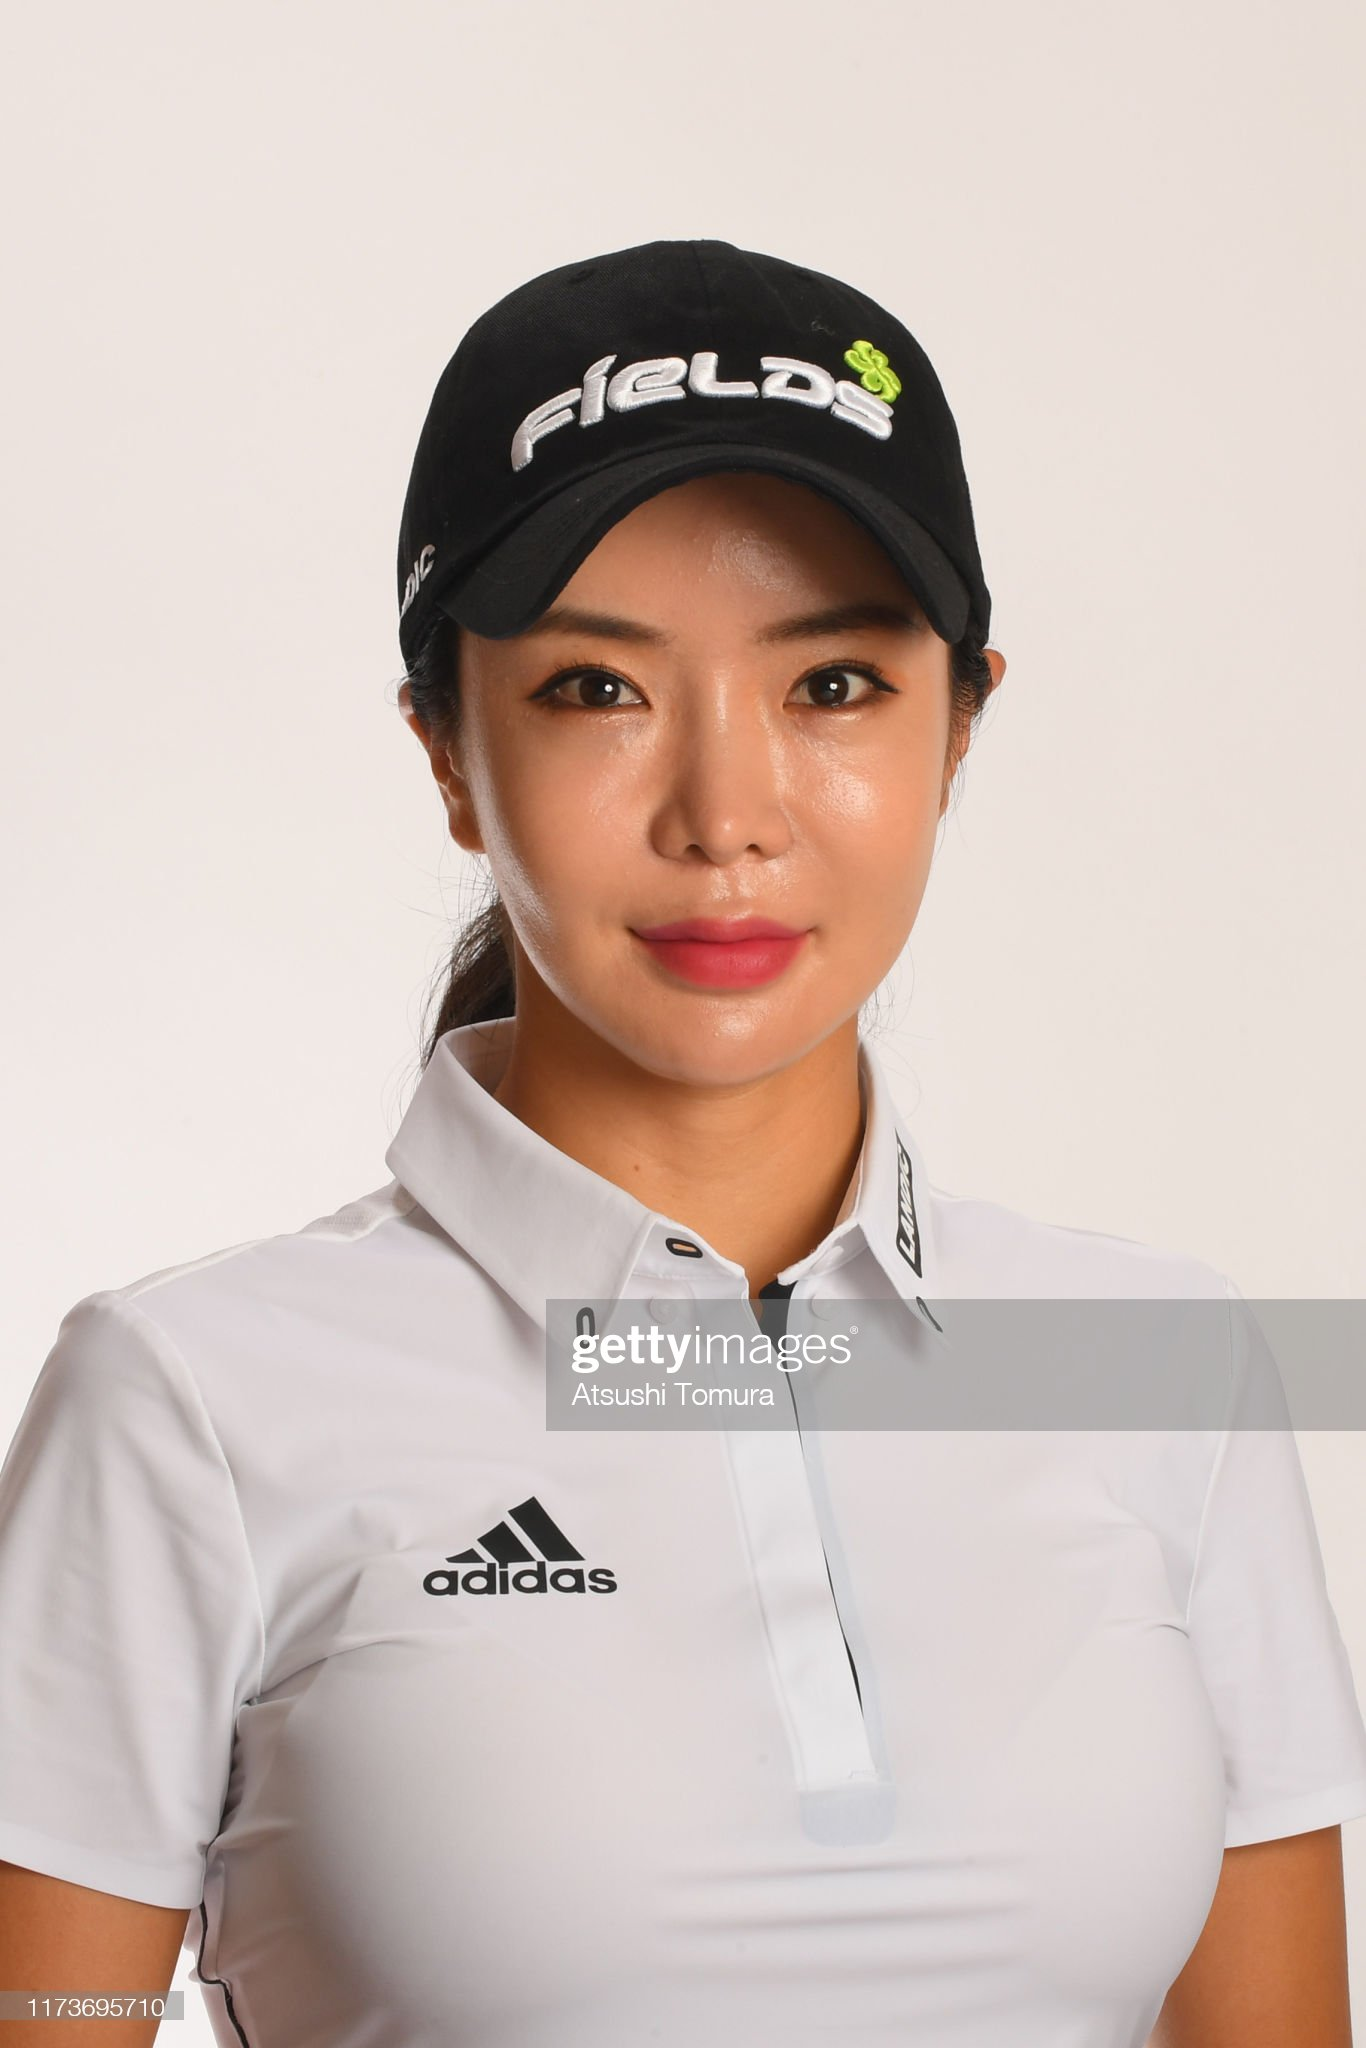 https://media.gettyimages.com/photos/shinae-ahn-of-south-korea-poses-during-the-japanese-lpga-portrait-at-picture-id1173695710?s=2048x2048